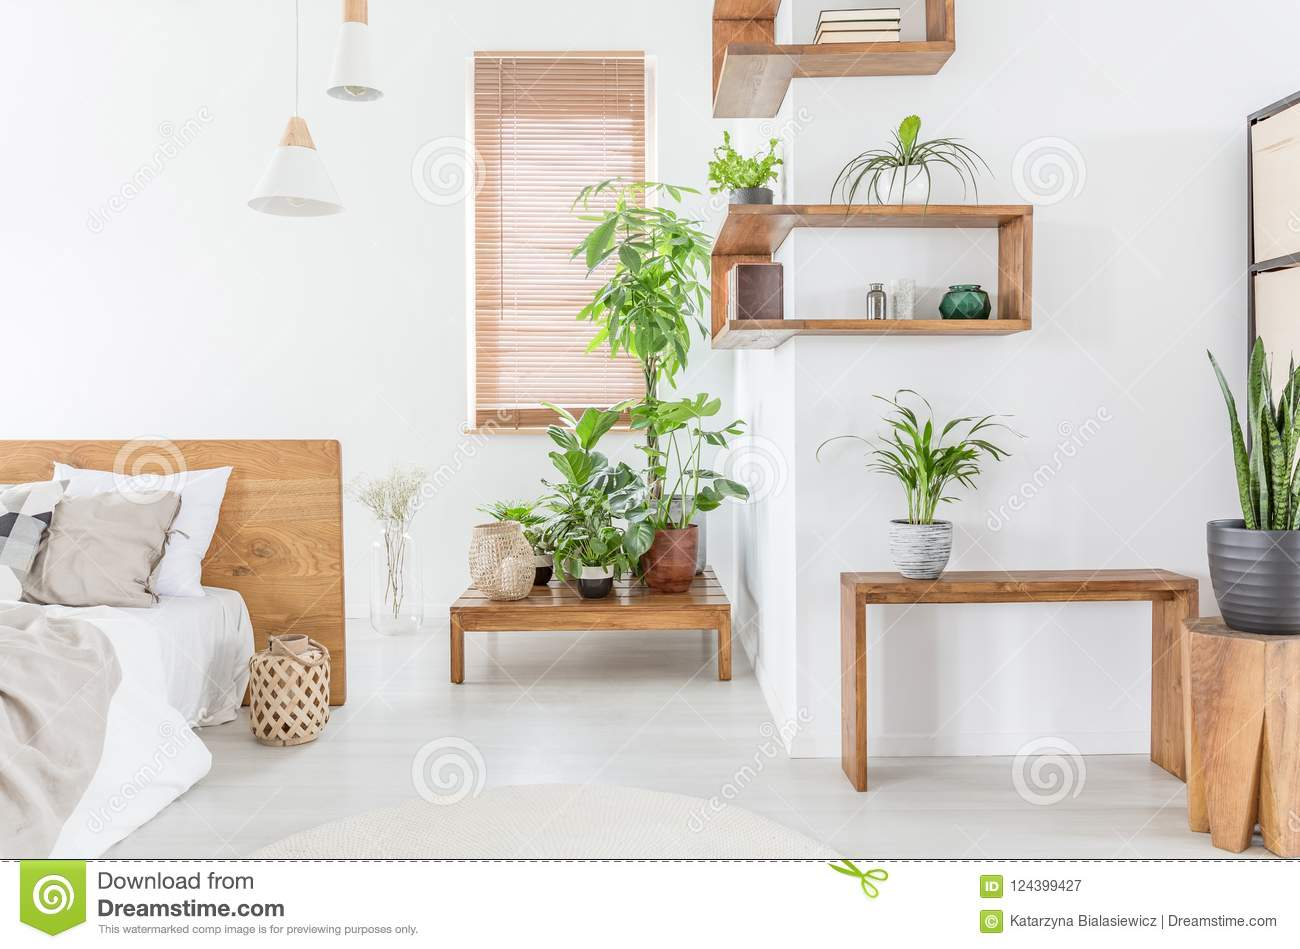 Download Plants On Wooden Table In White Bedroom Interior With Bed Next To  Window With Blinds